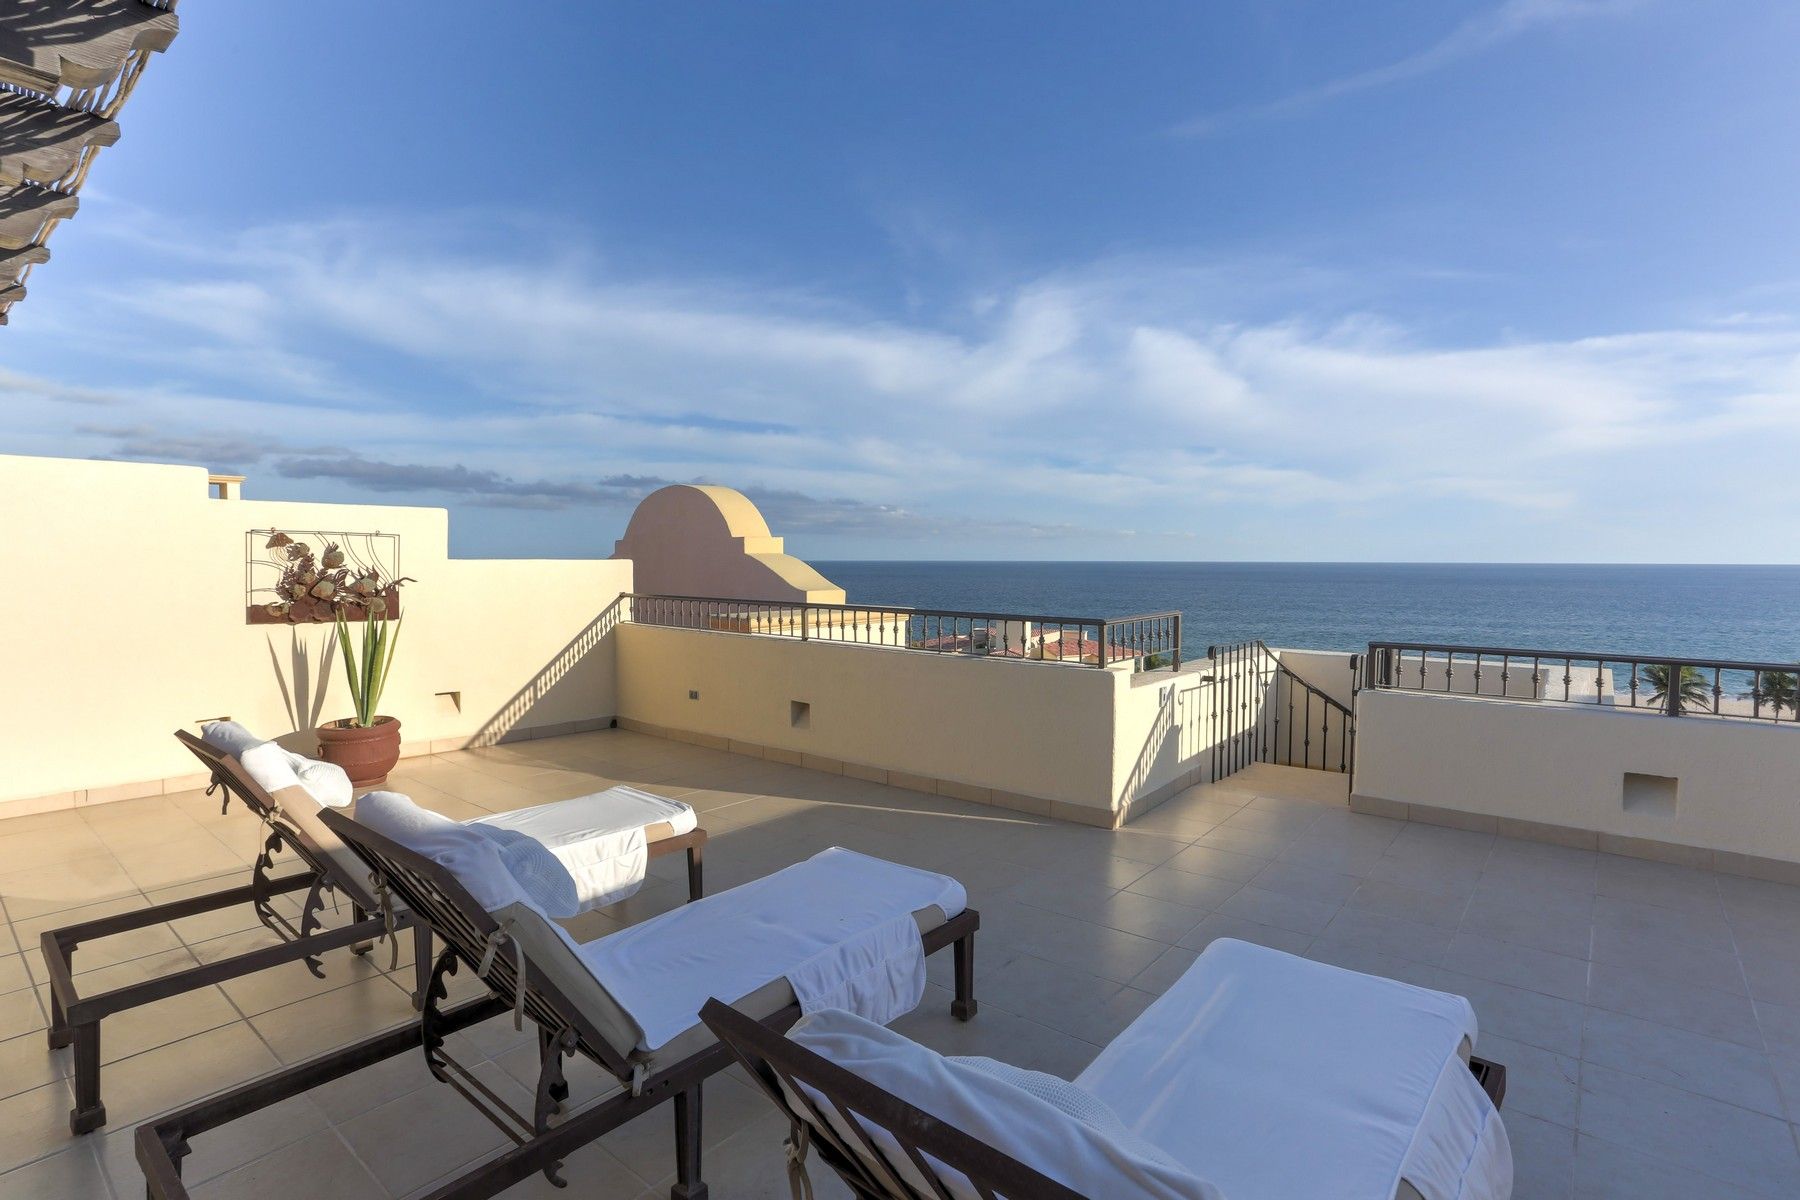 Additional photo for property listing at Penthouse 3602 Blvd Paseo San José Zona Hotelera Penthouse 3602 San Jose Del Cabo, Baja California Sur 23400 Mexico